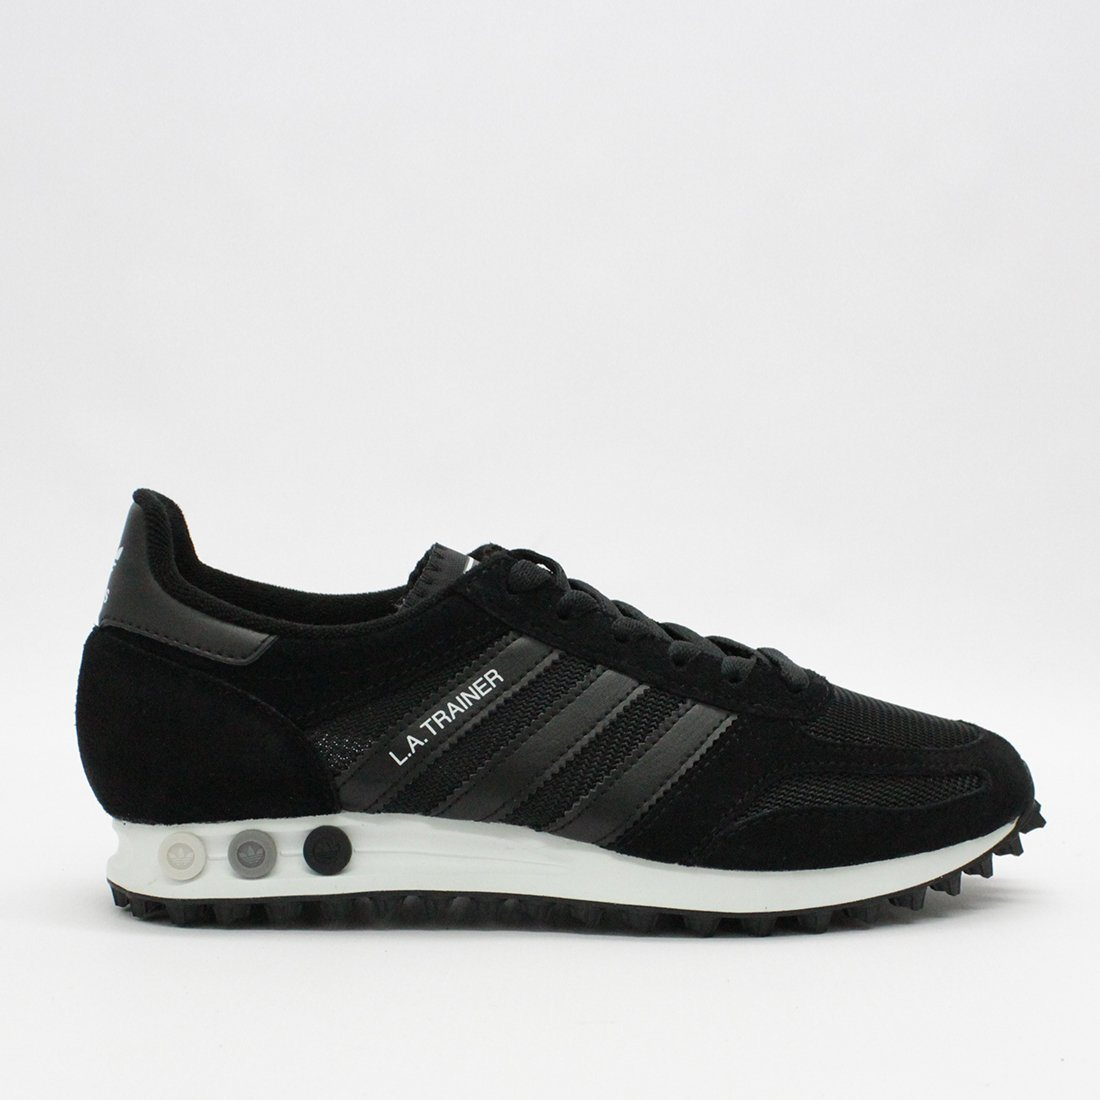 Adidas Originals LA Trainer OG Black BY9326